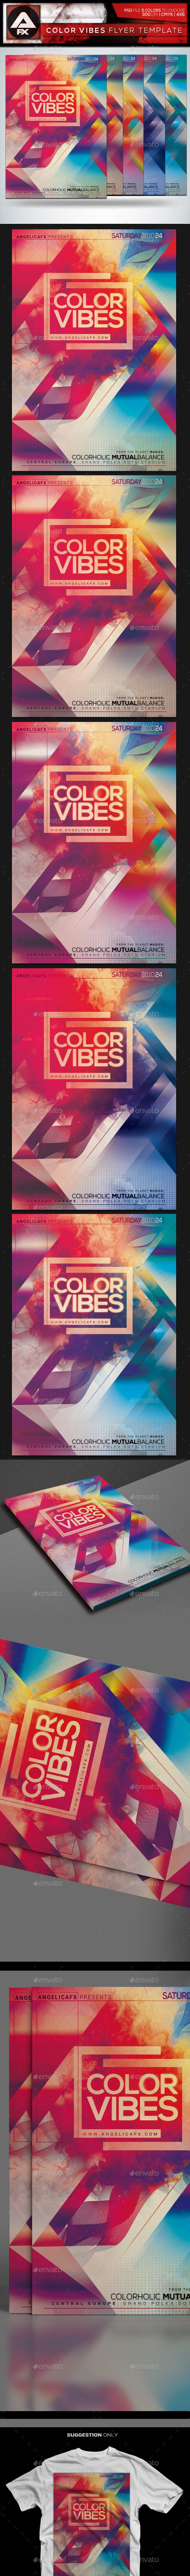 Color Vibes Flyer Template - Flyers Print Templates